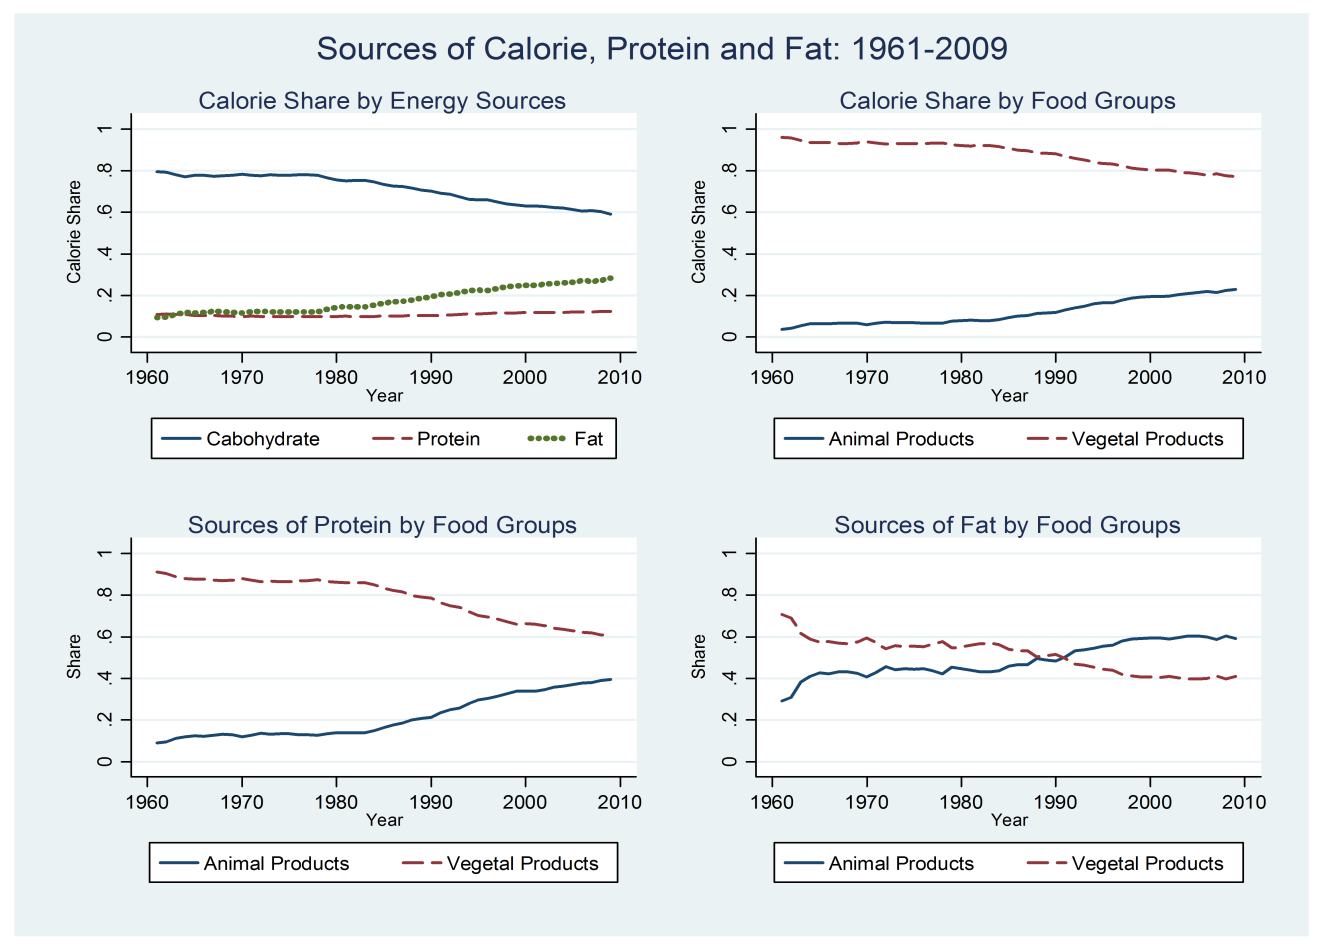 Figure 1.2: Calorie Intake by Food Items: 1961-2009 Notes: 1. Calculations are based on data in FAOSTAT. 2.